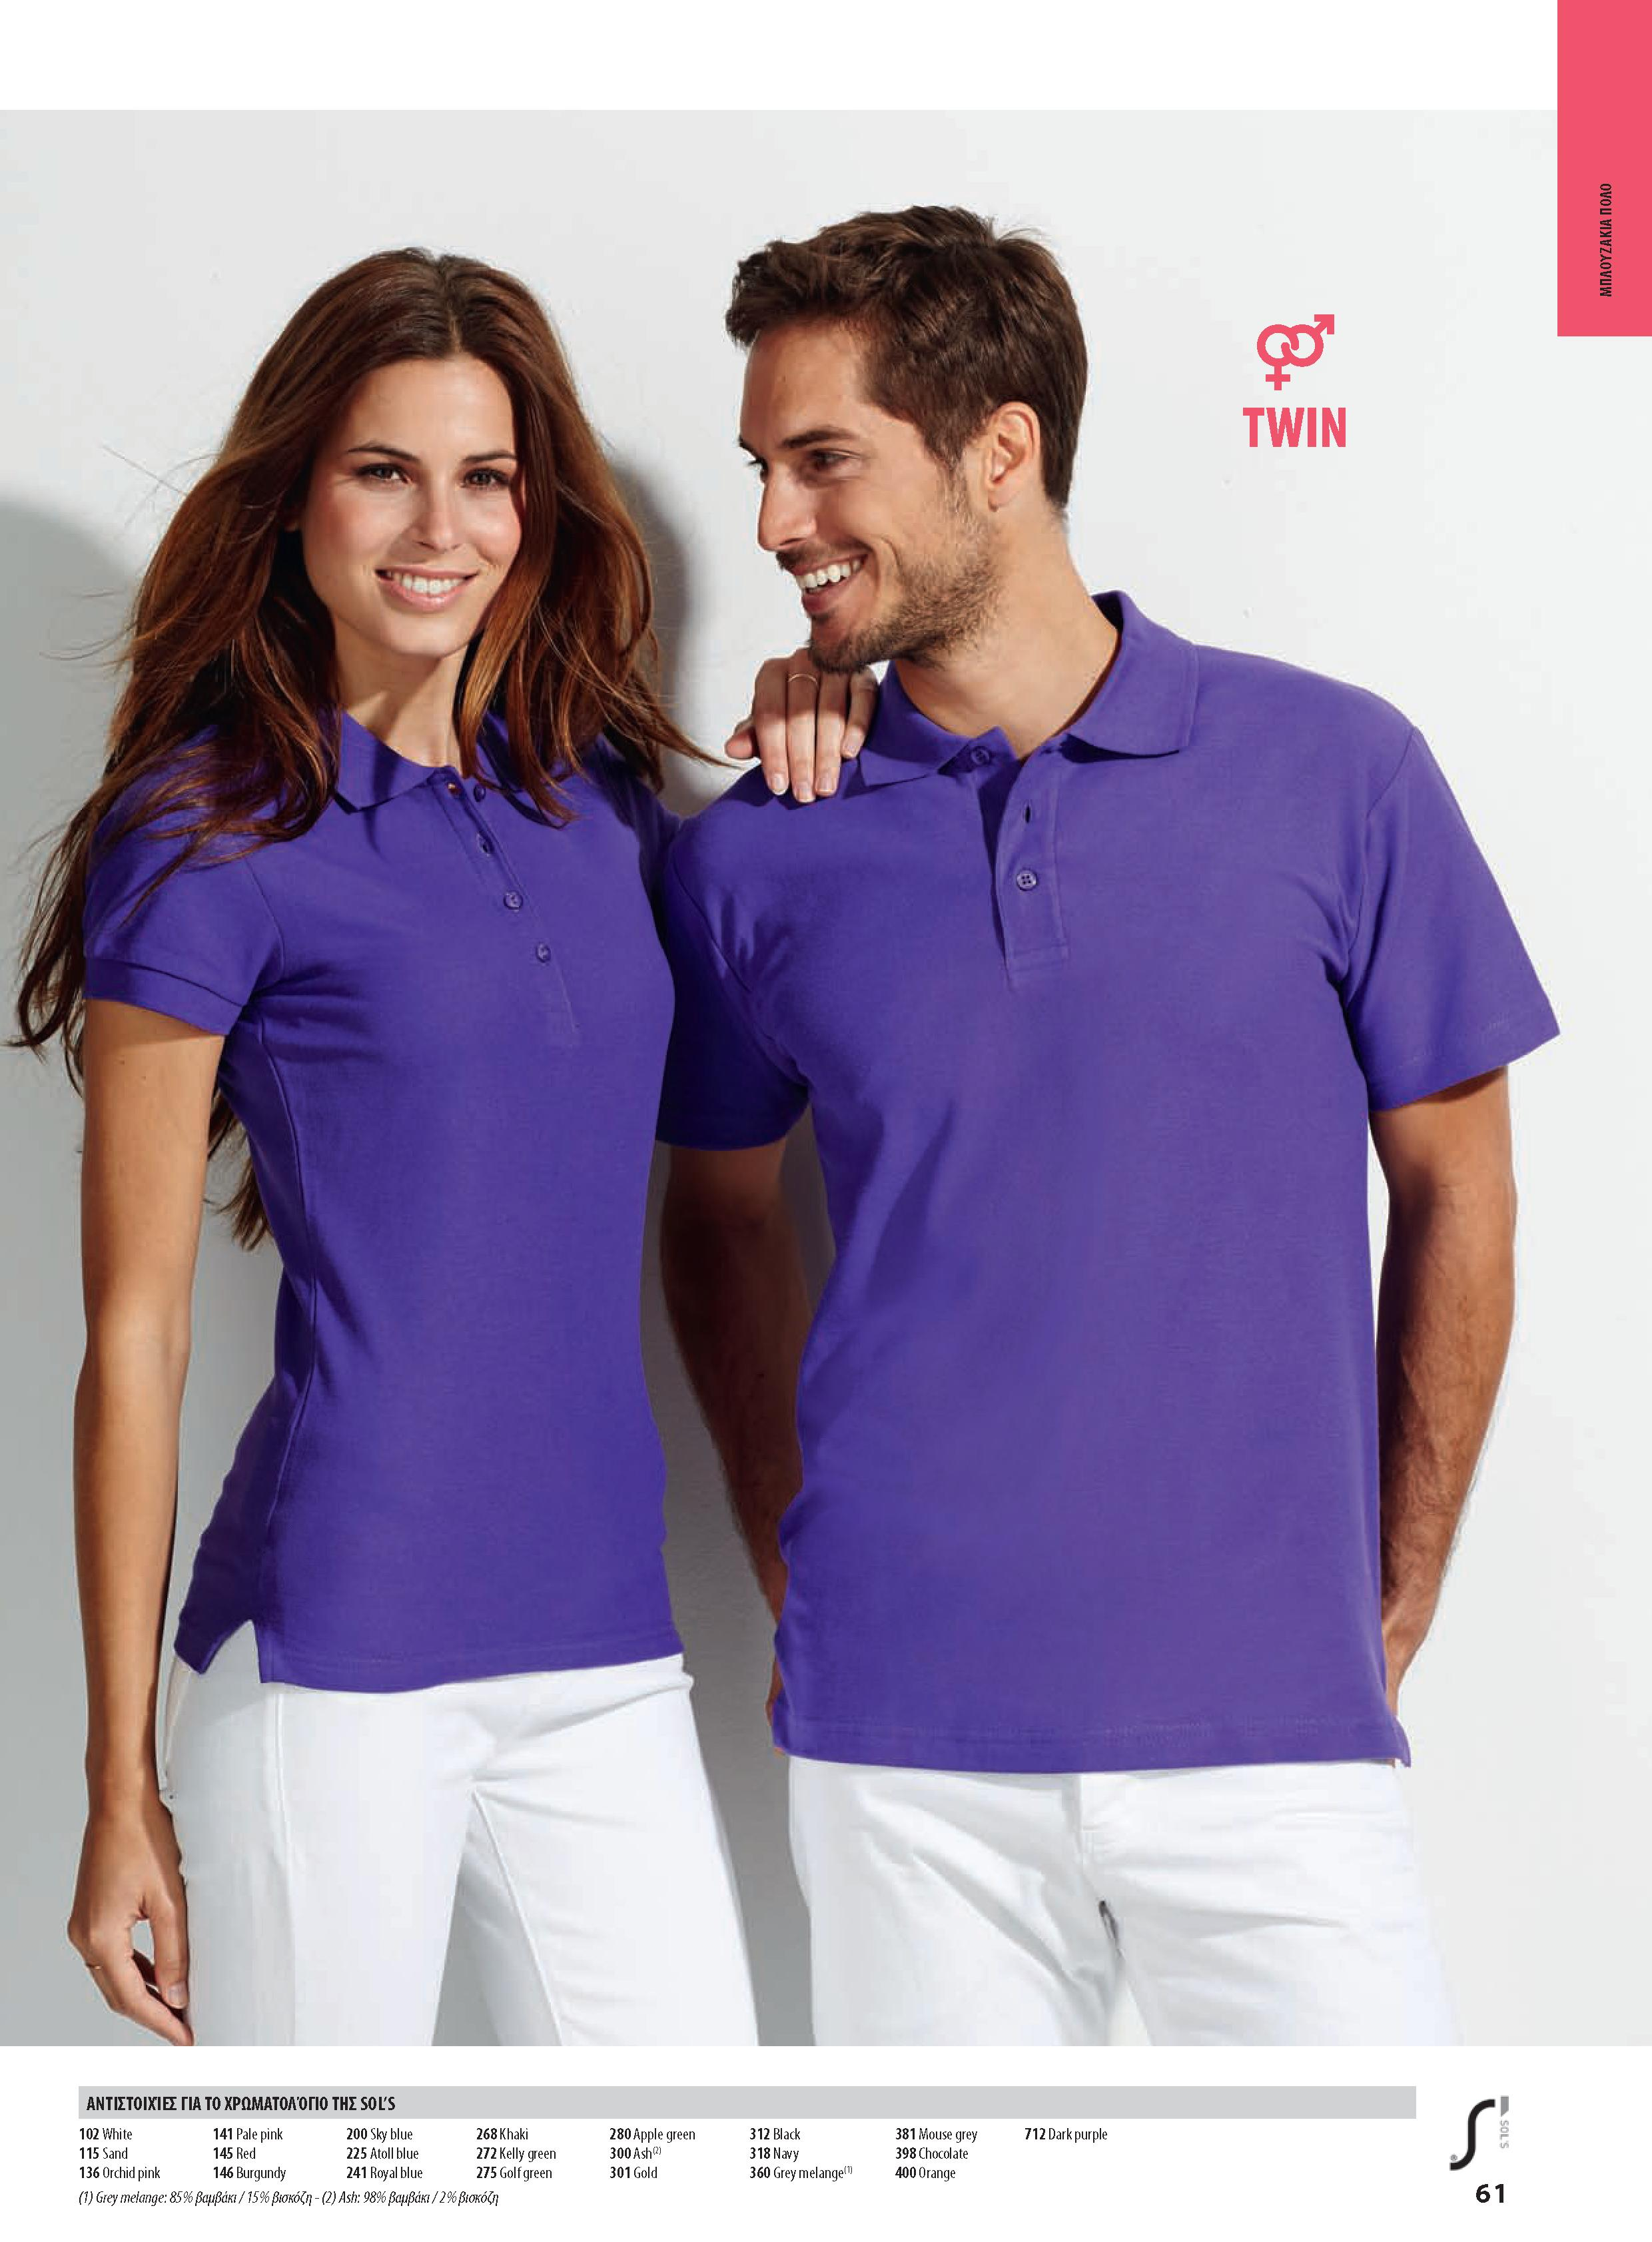 sport billy polo